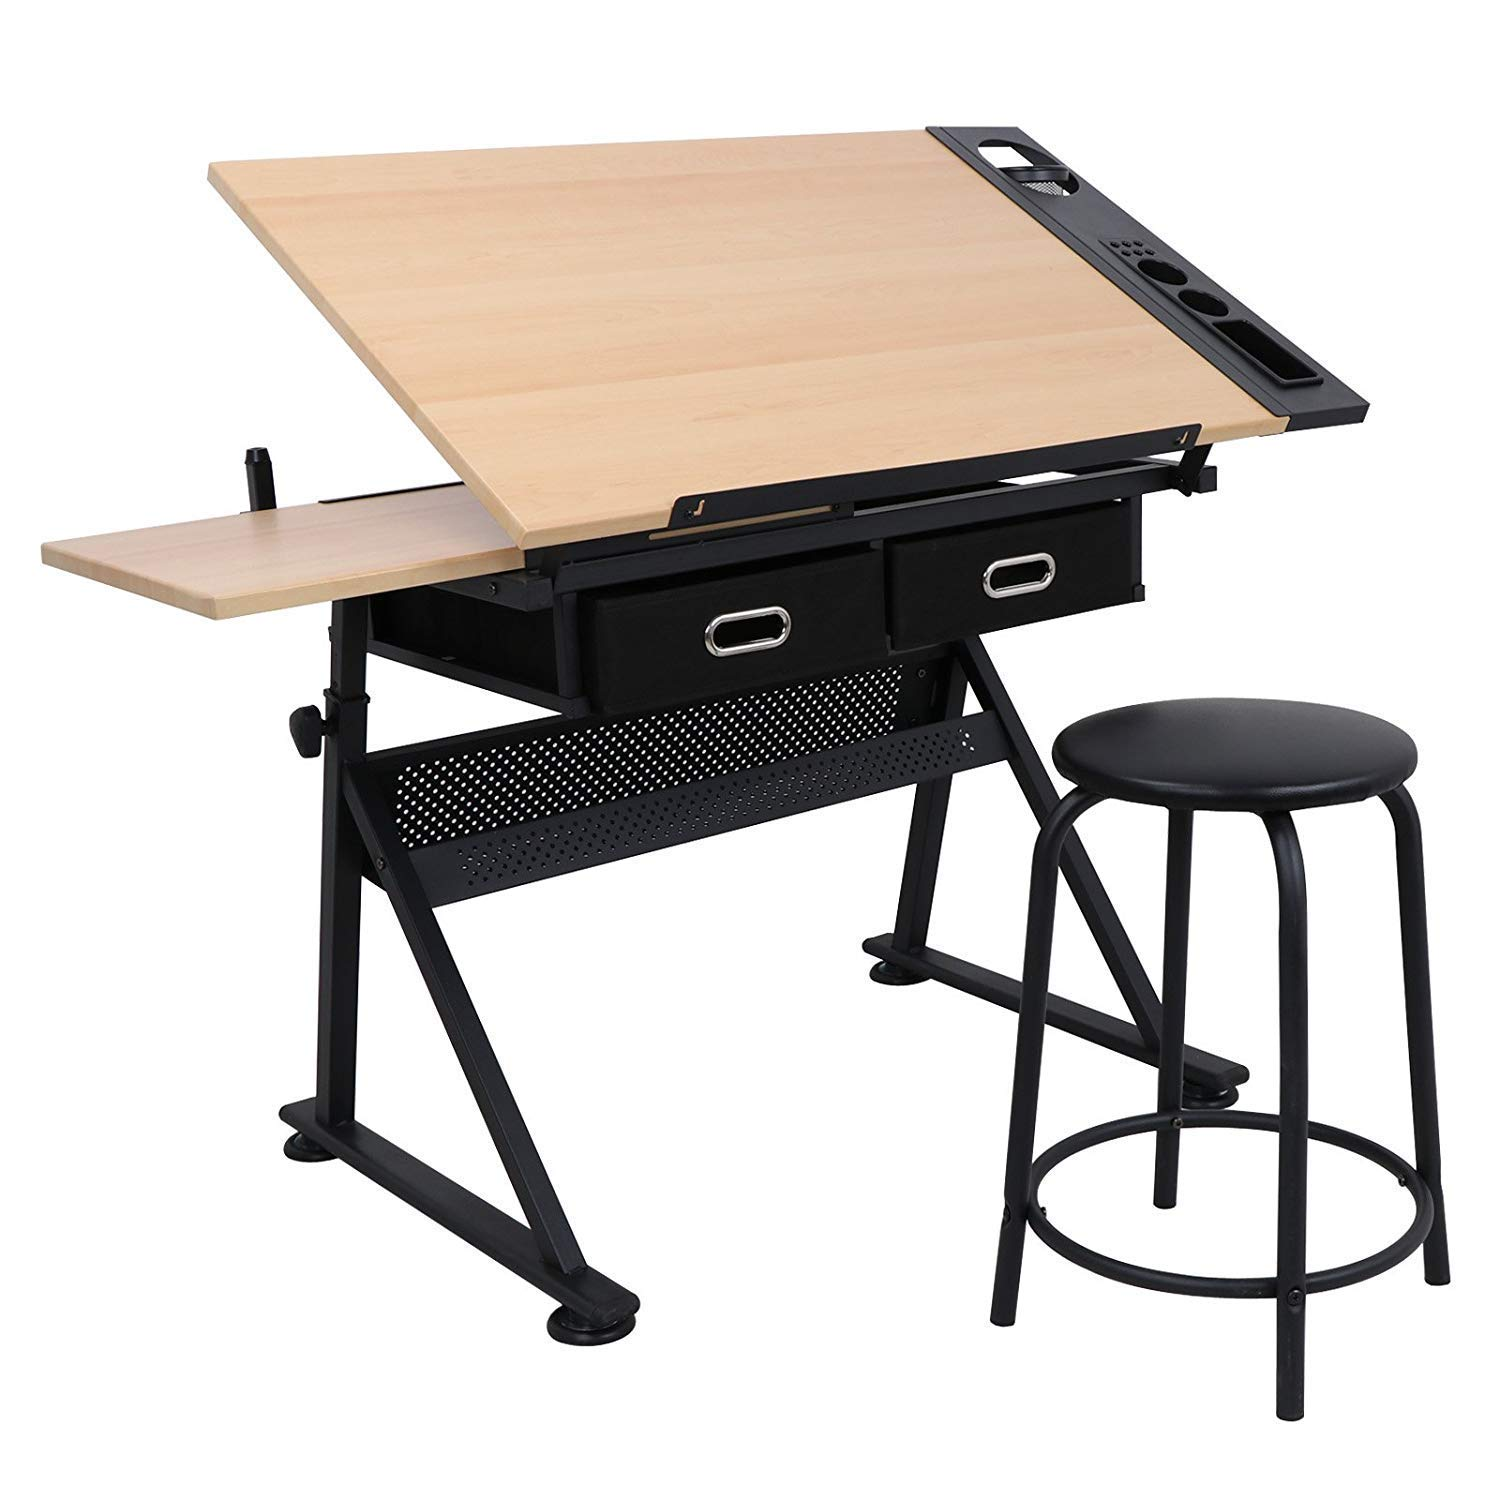 HomGarden Height Adjustable Drafting Draft Desk Drawing Table Desk Rolling Tiltable Tabletop w/Stool, Storage Drawers for Reading, Writing, Art Craft Work Station by HomGarden